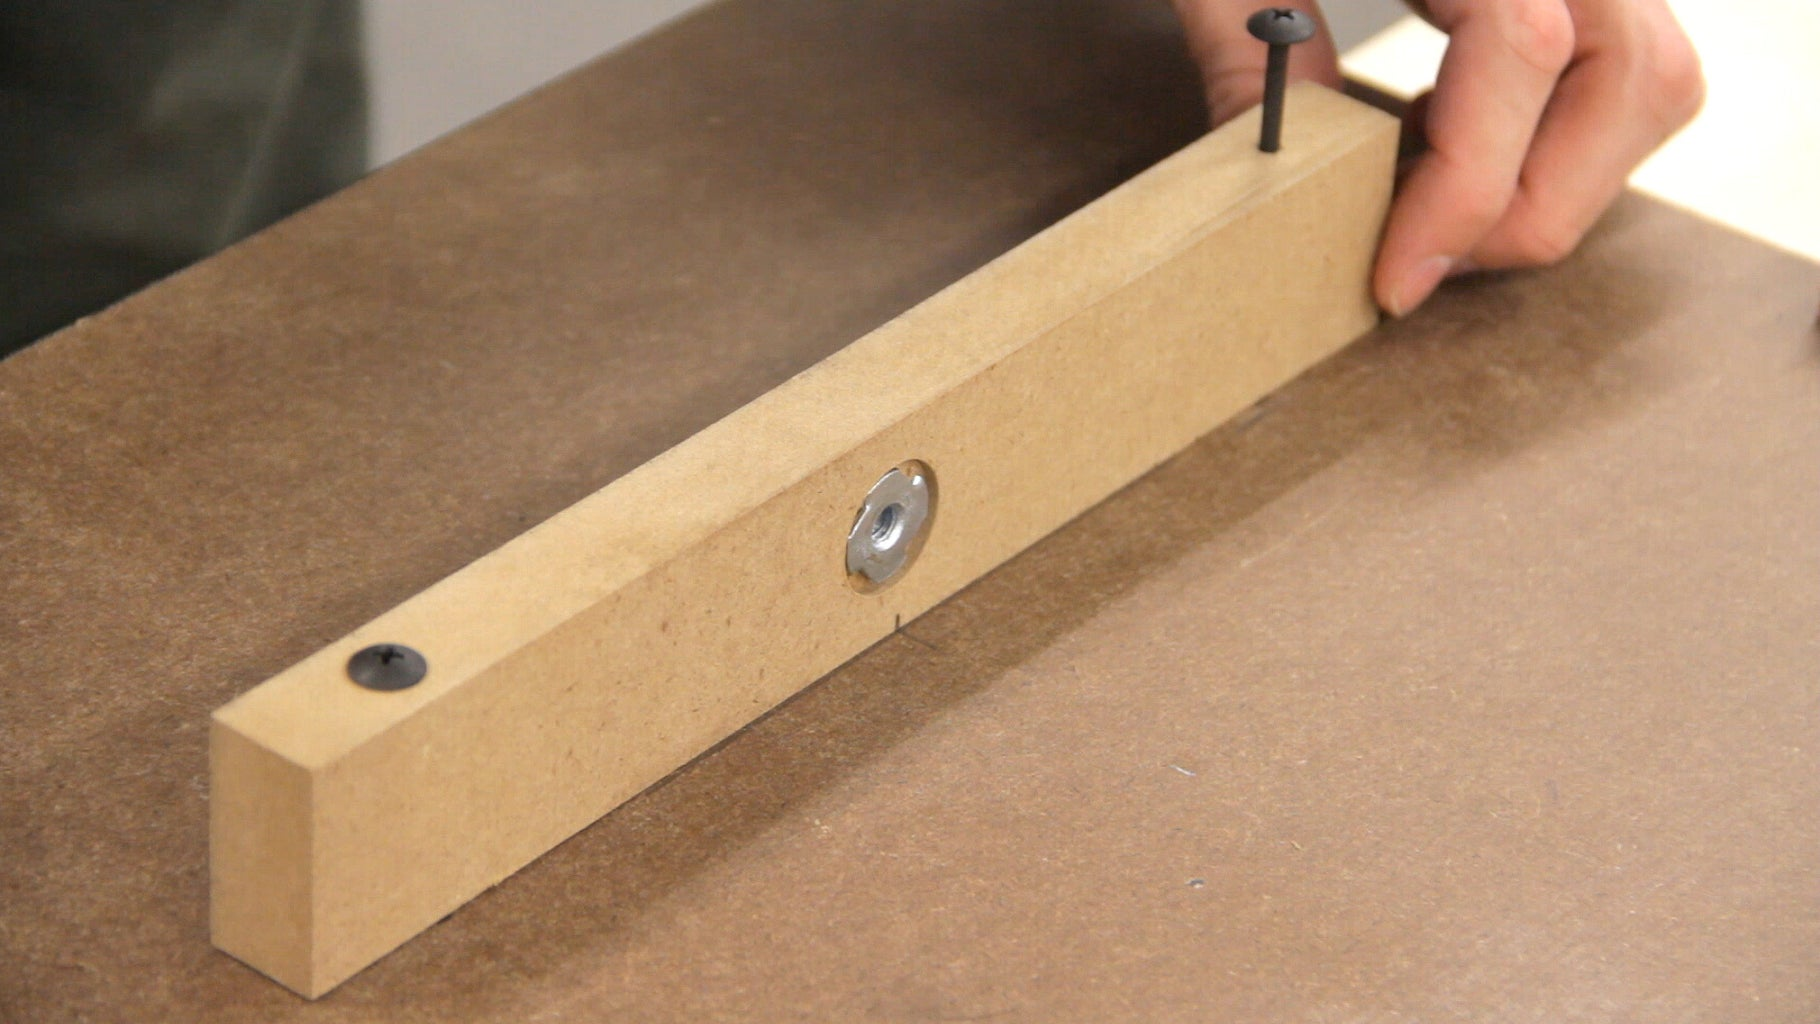 Attaching the Table (Front and Right Cleats)